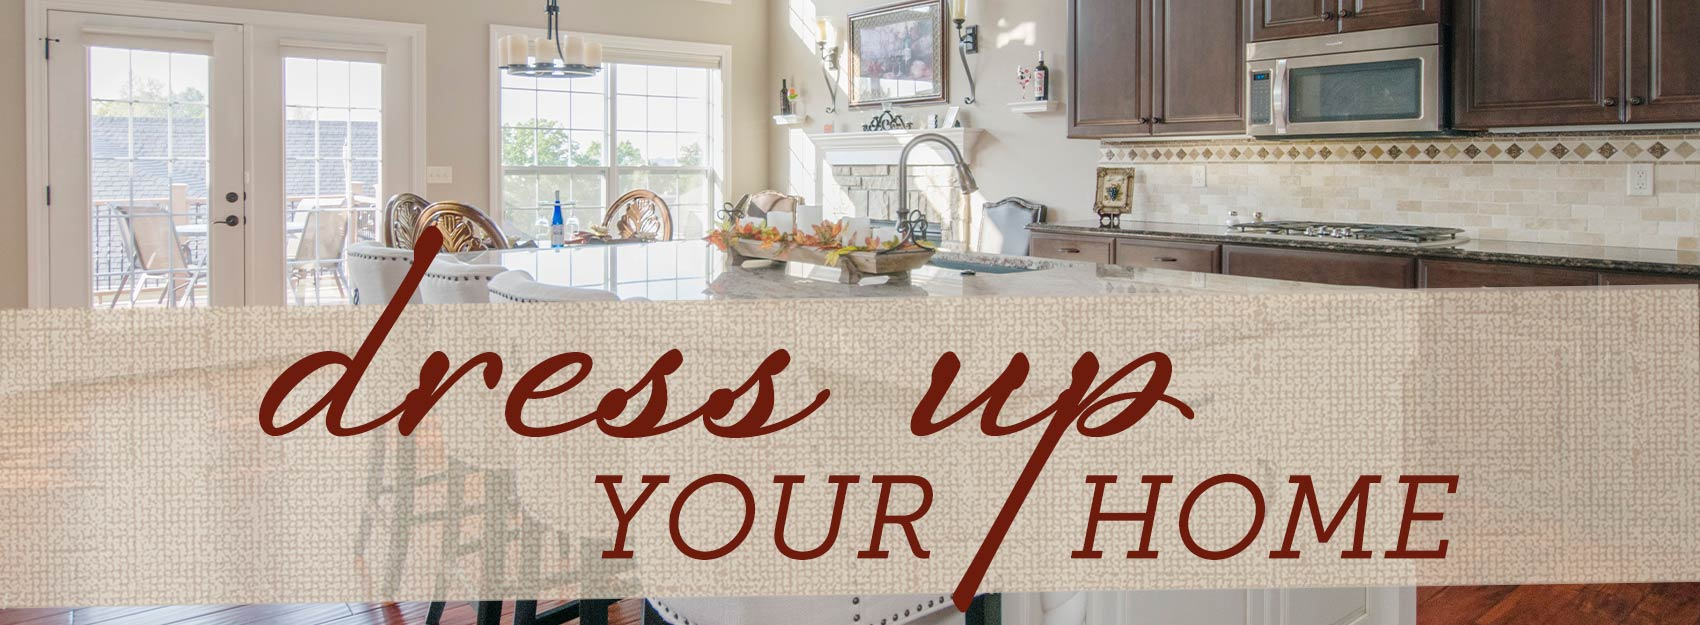 Dress Up Your Home